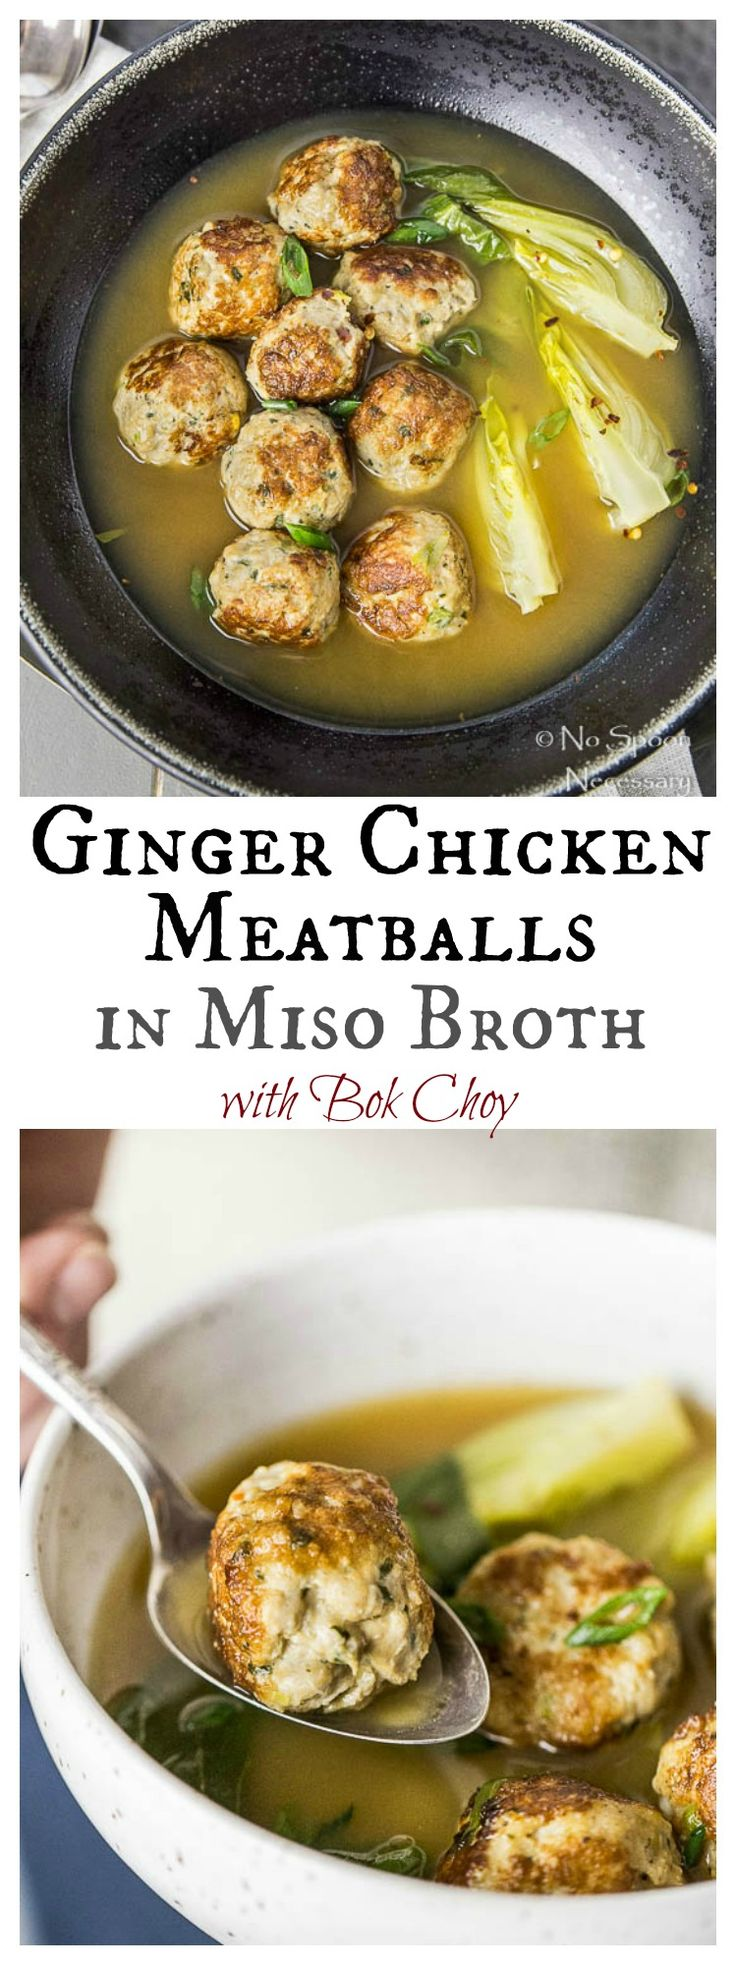 Ginger Chicken Meatballs in Miso Broth with Bok Choy - an Asian Spin on Italian Wedding Soup!